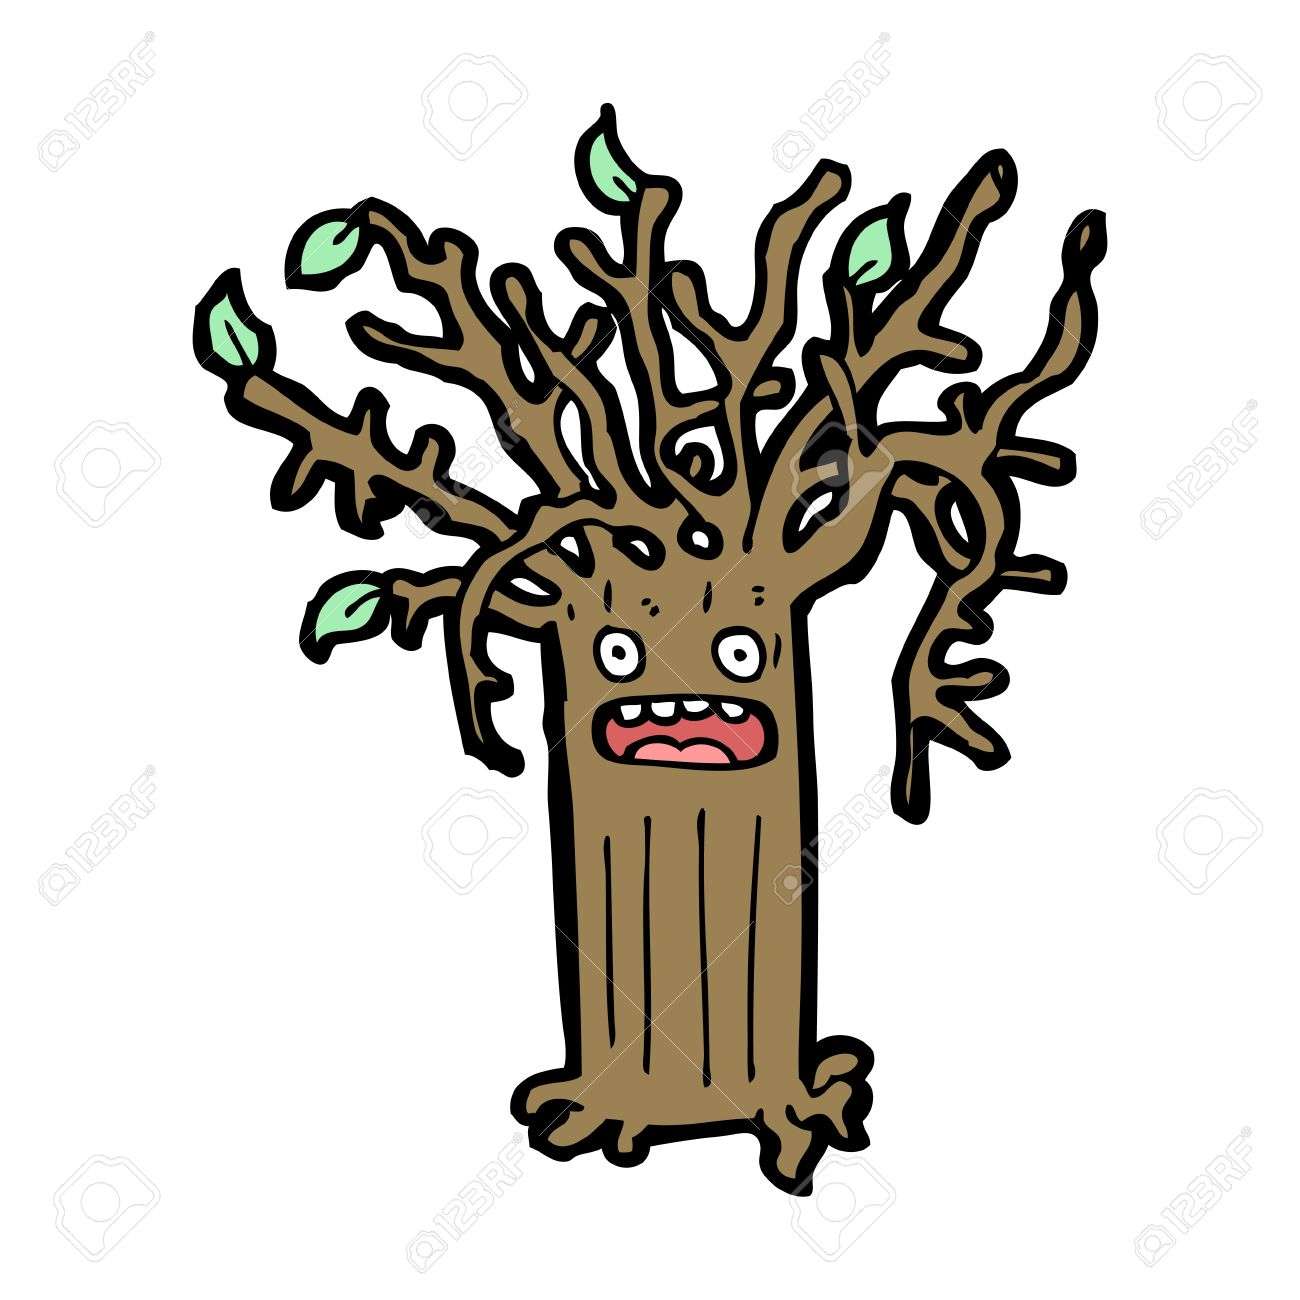 Cartoon Dead Tree Royalty Free Cliparts Vectors And Stock Illustration Image 16111444 Cartoon tree stump stock vector. cartoon dead tree